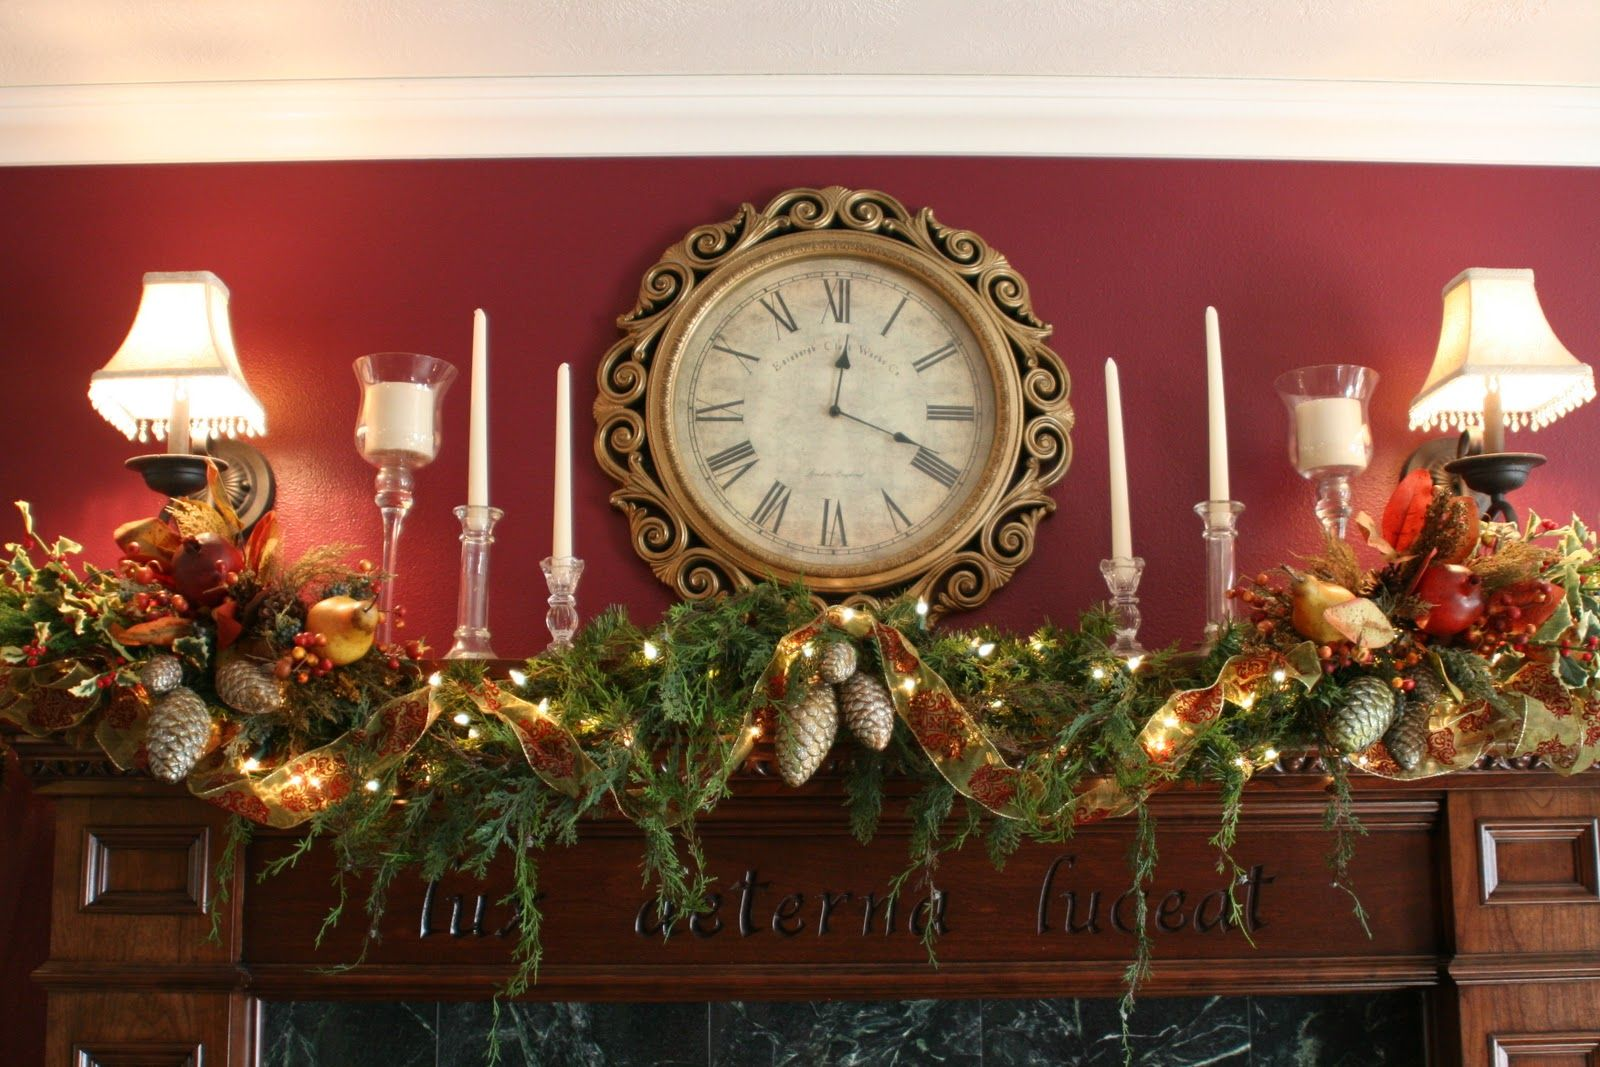 Victorian Christmas Mantel Decorations | Christmas  Mantel With Terrific Designs Top